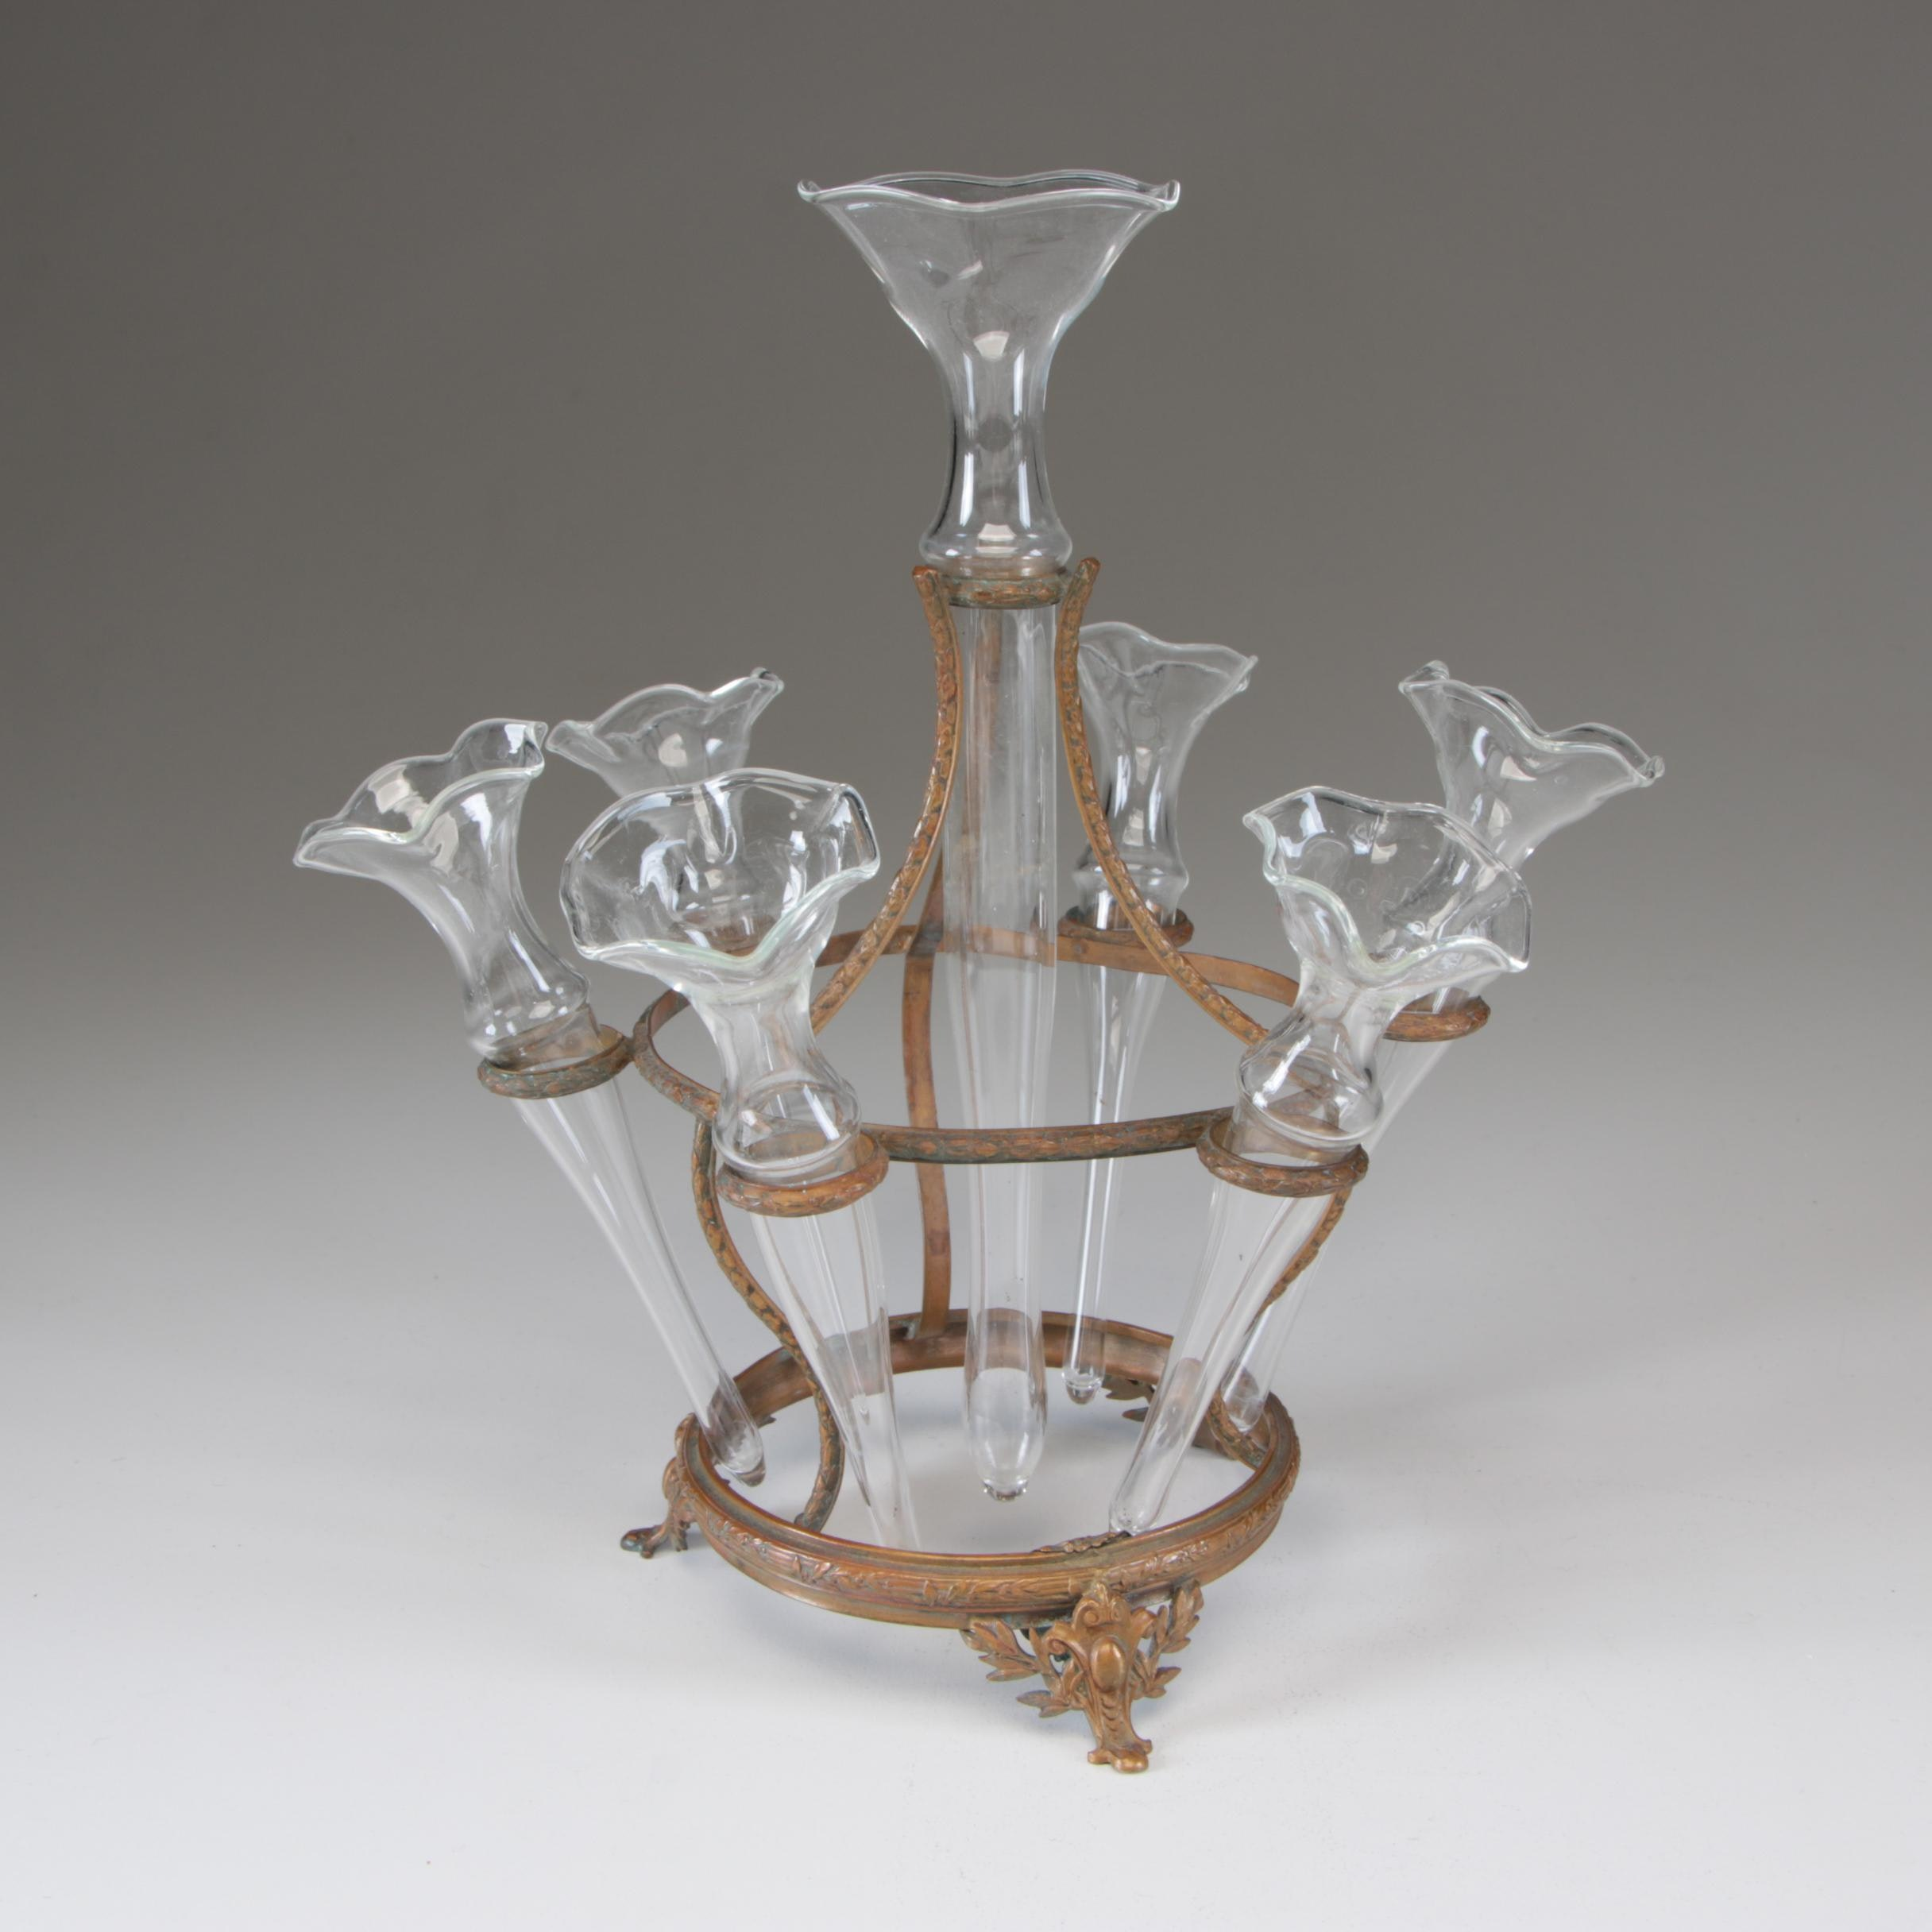 Baroque Revival French Gilt Metal and Blown Glass Epergne, Late 19th Century